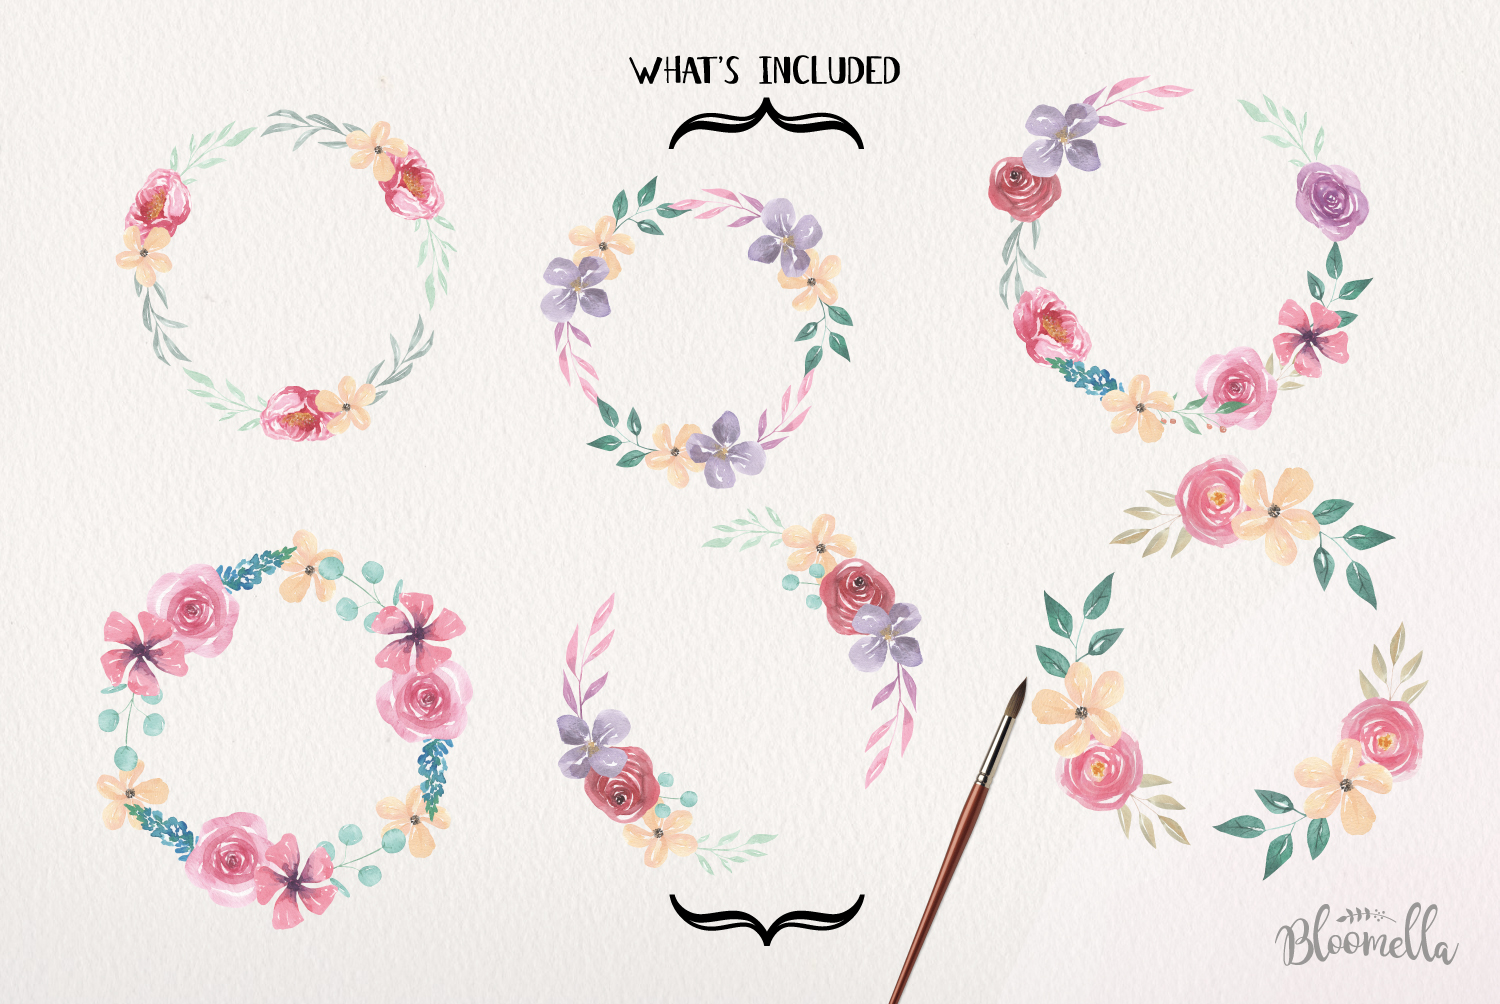 Floral 6 Wreath Watercolor Pink Floral Roses Garlands Flower example image 3